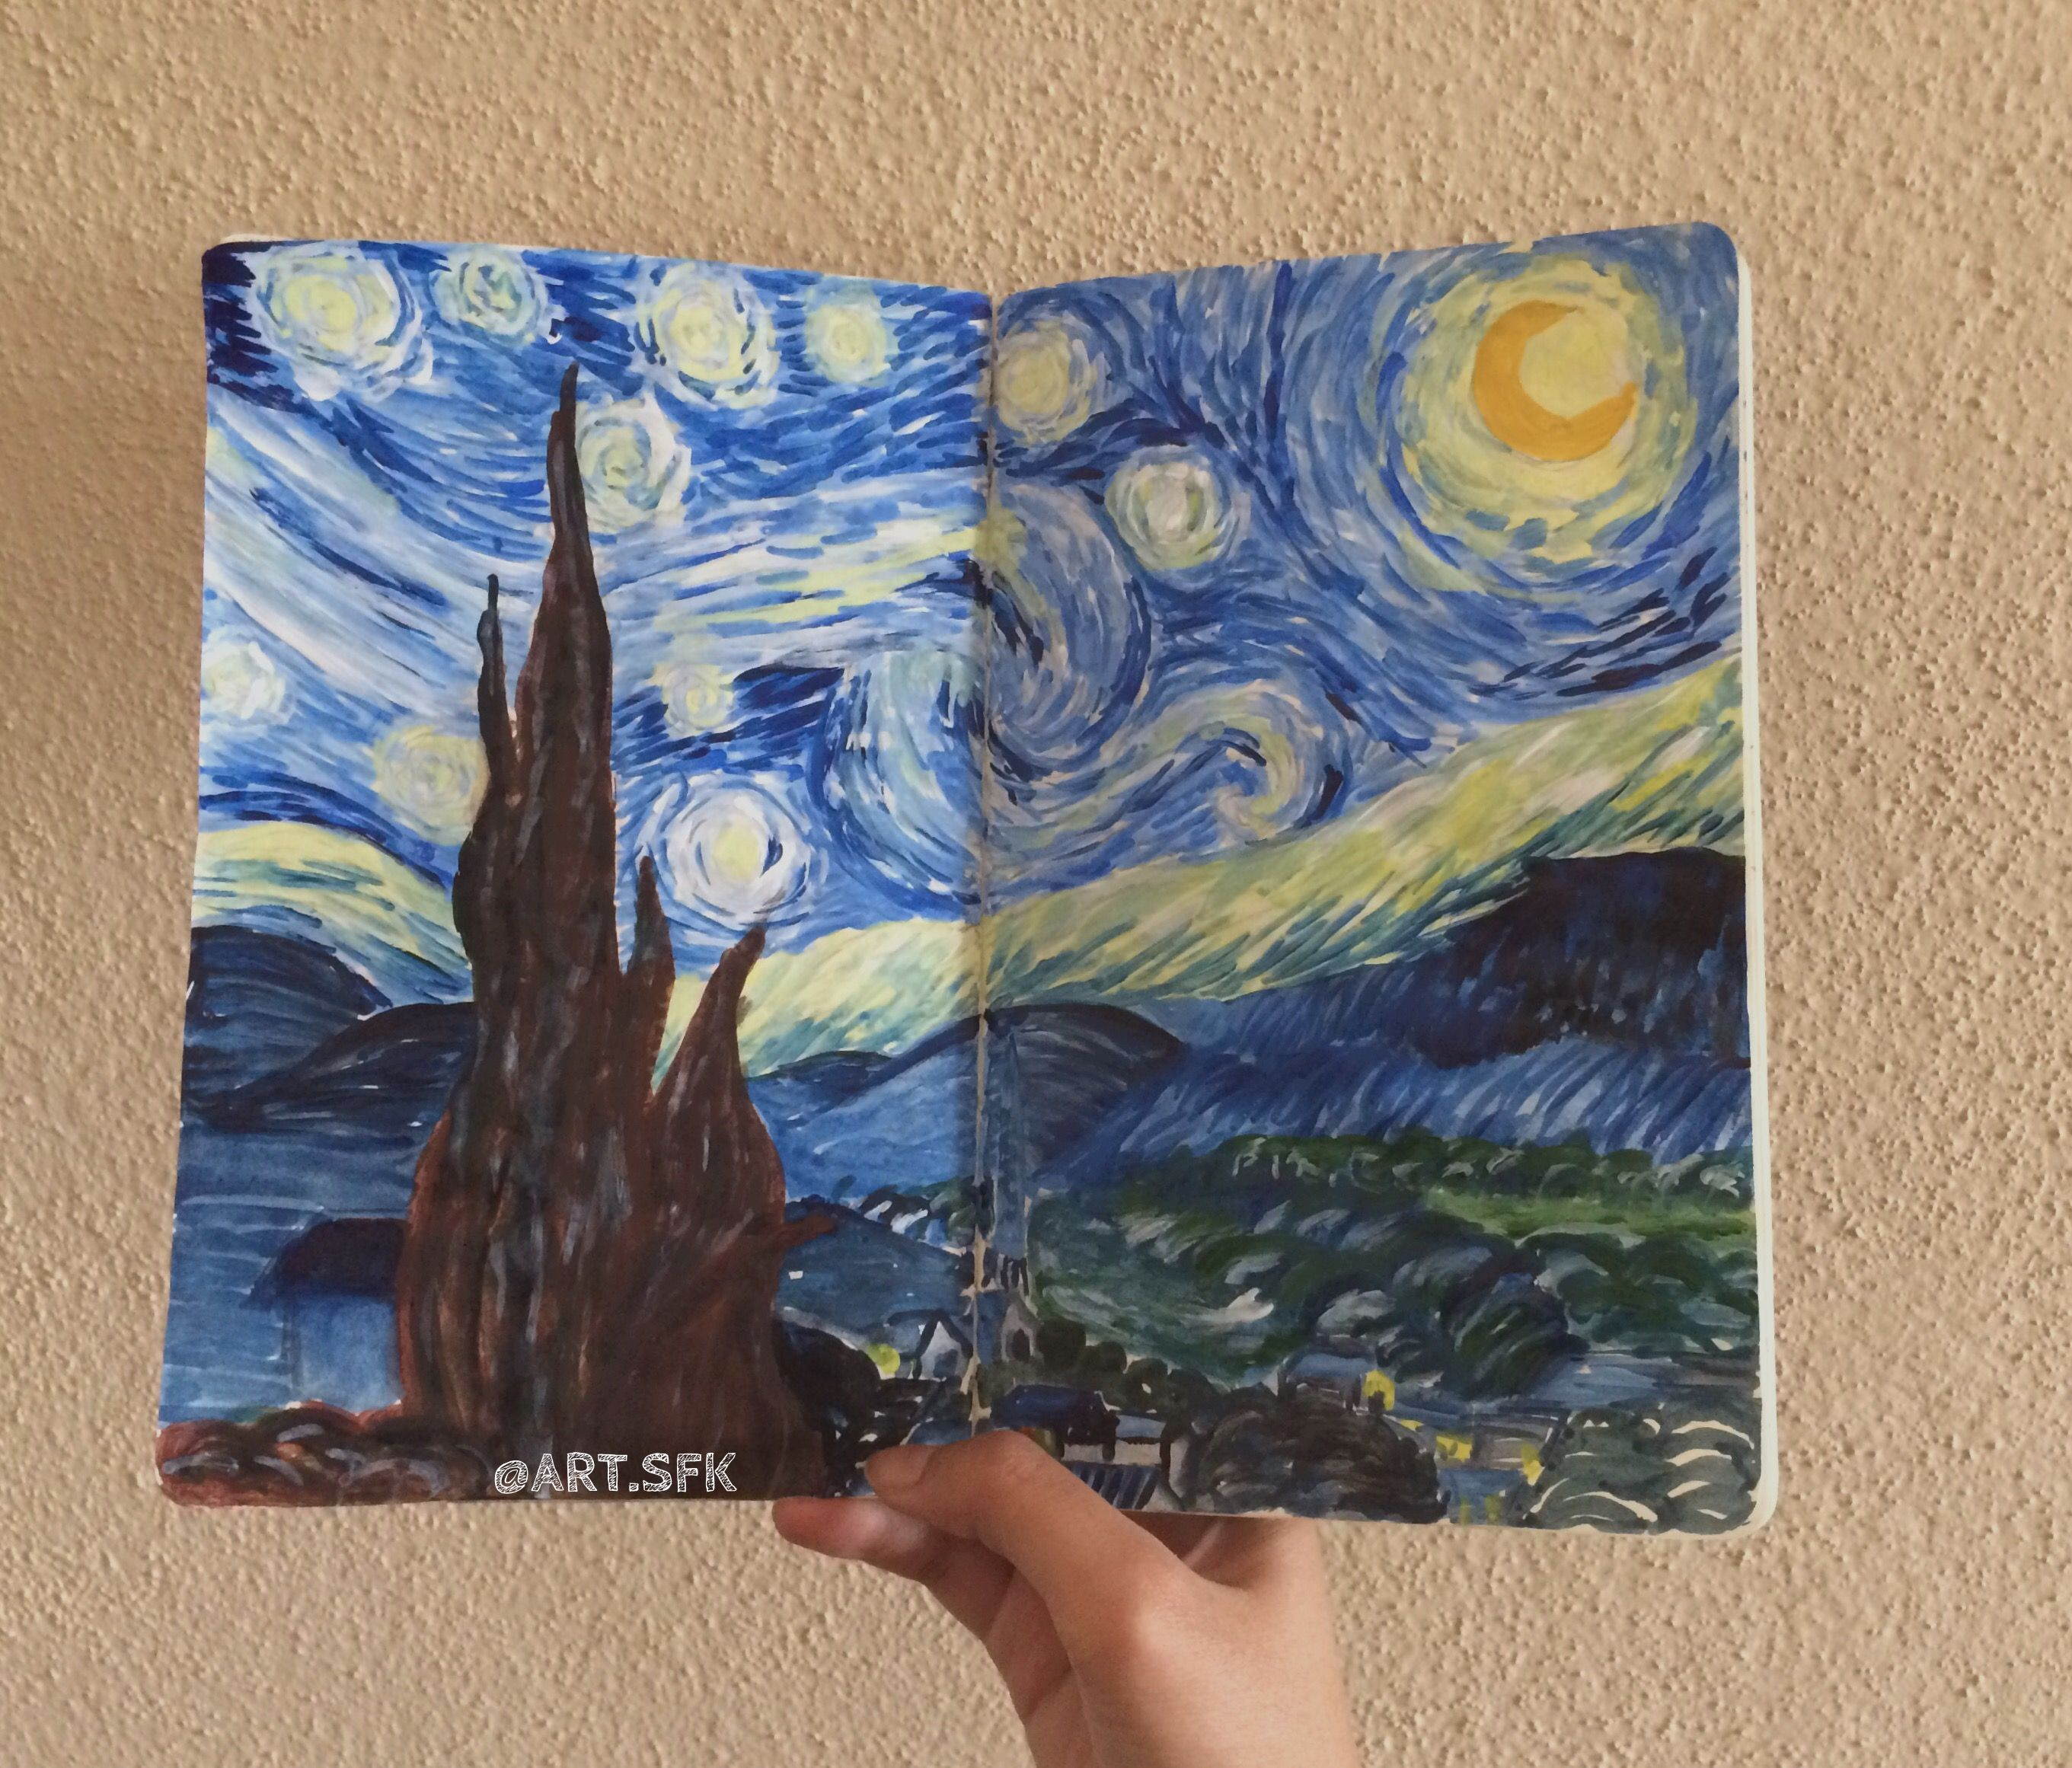 Reproduction Of Starry Night By Vincent Van Gogh #Sketchaday #Sketchoftheday